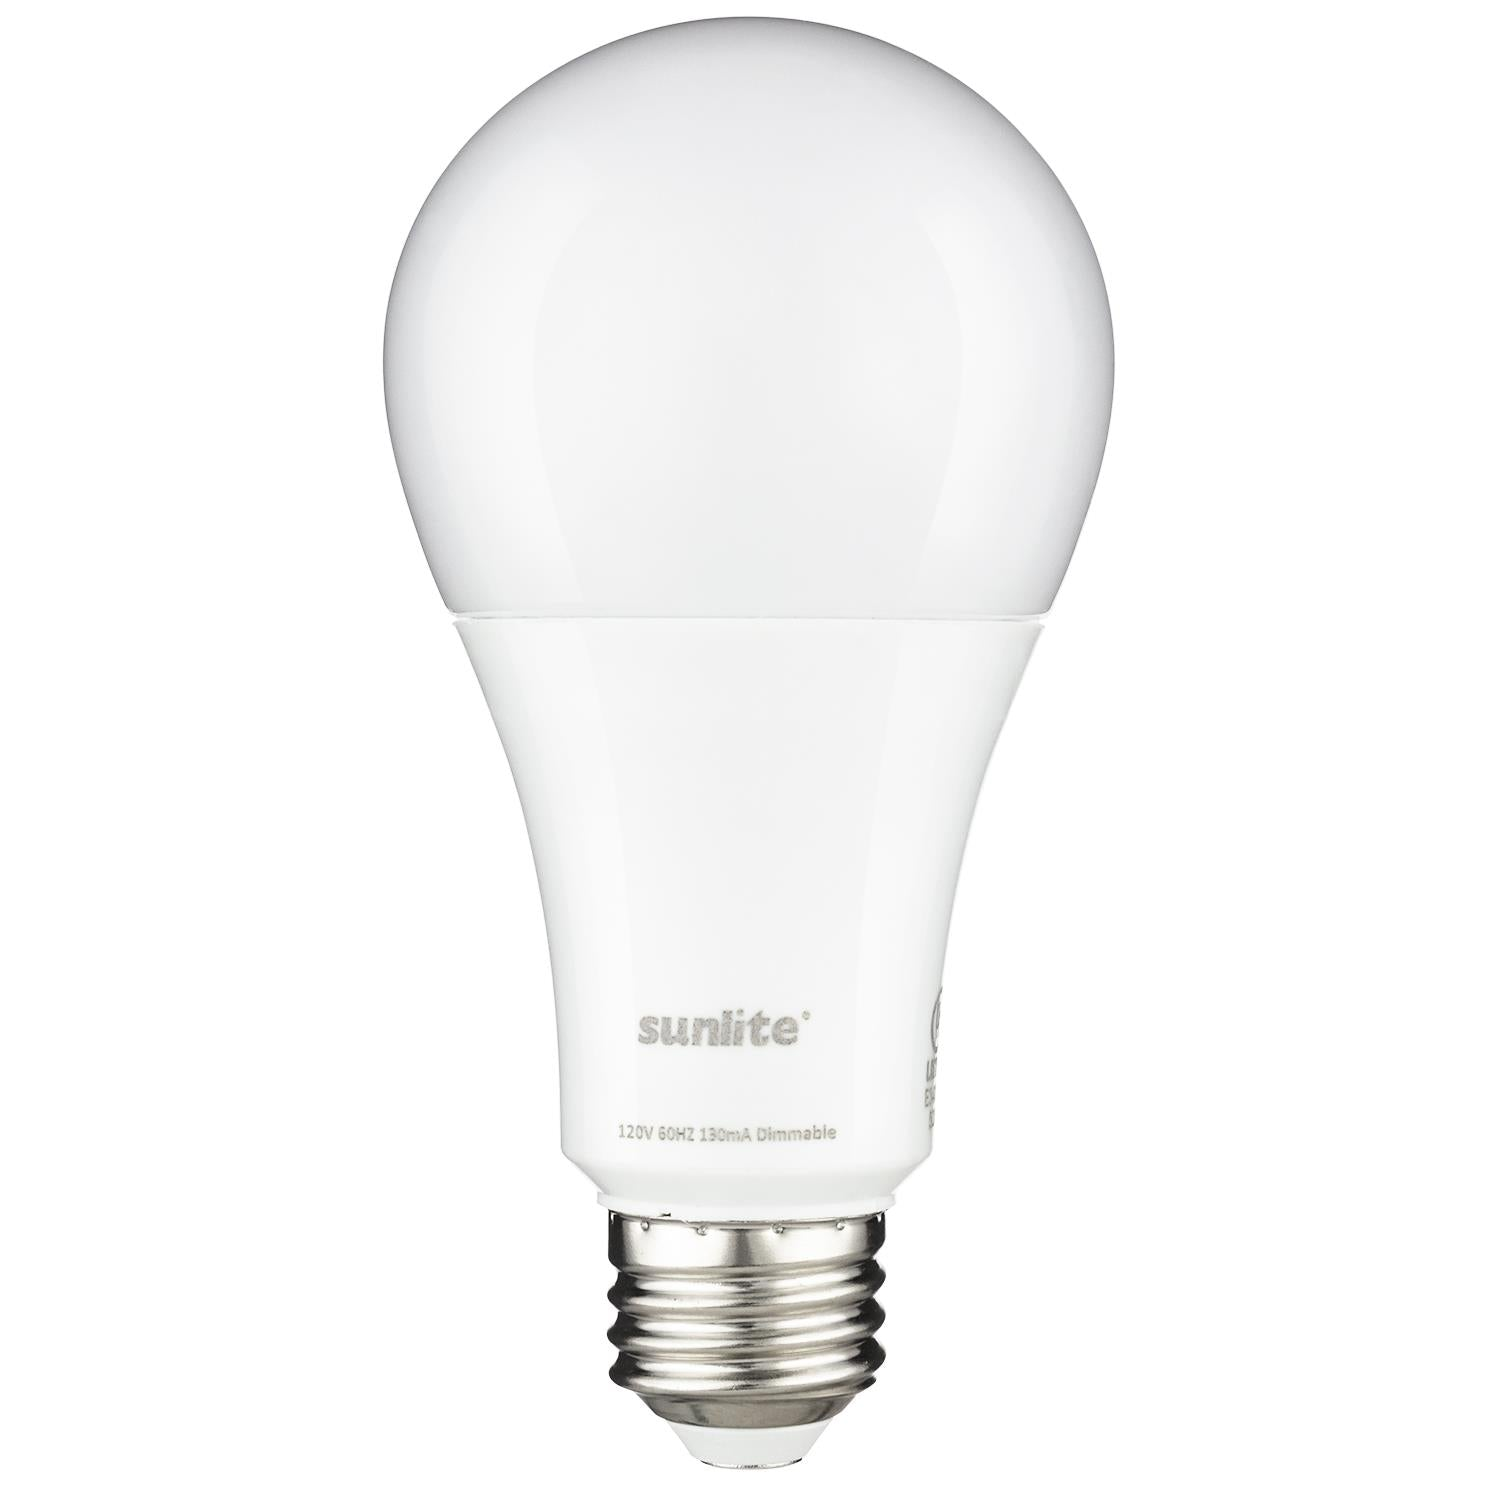 SUNLITE 80630-SU LED A21 Household 13w Light Bulb 2700K Warm White